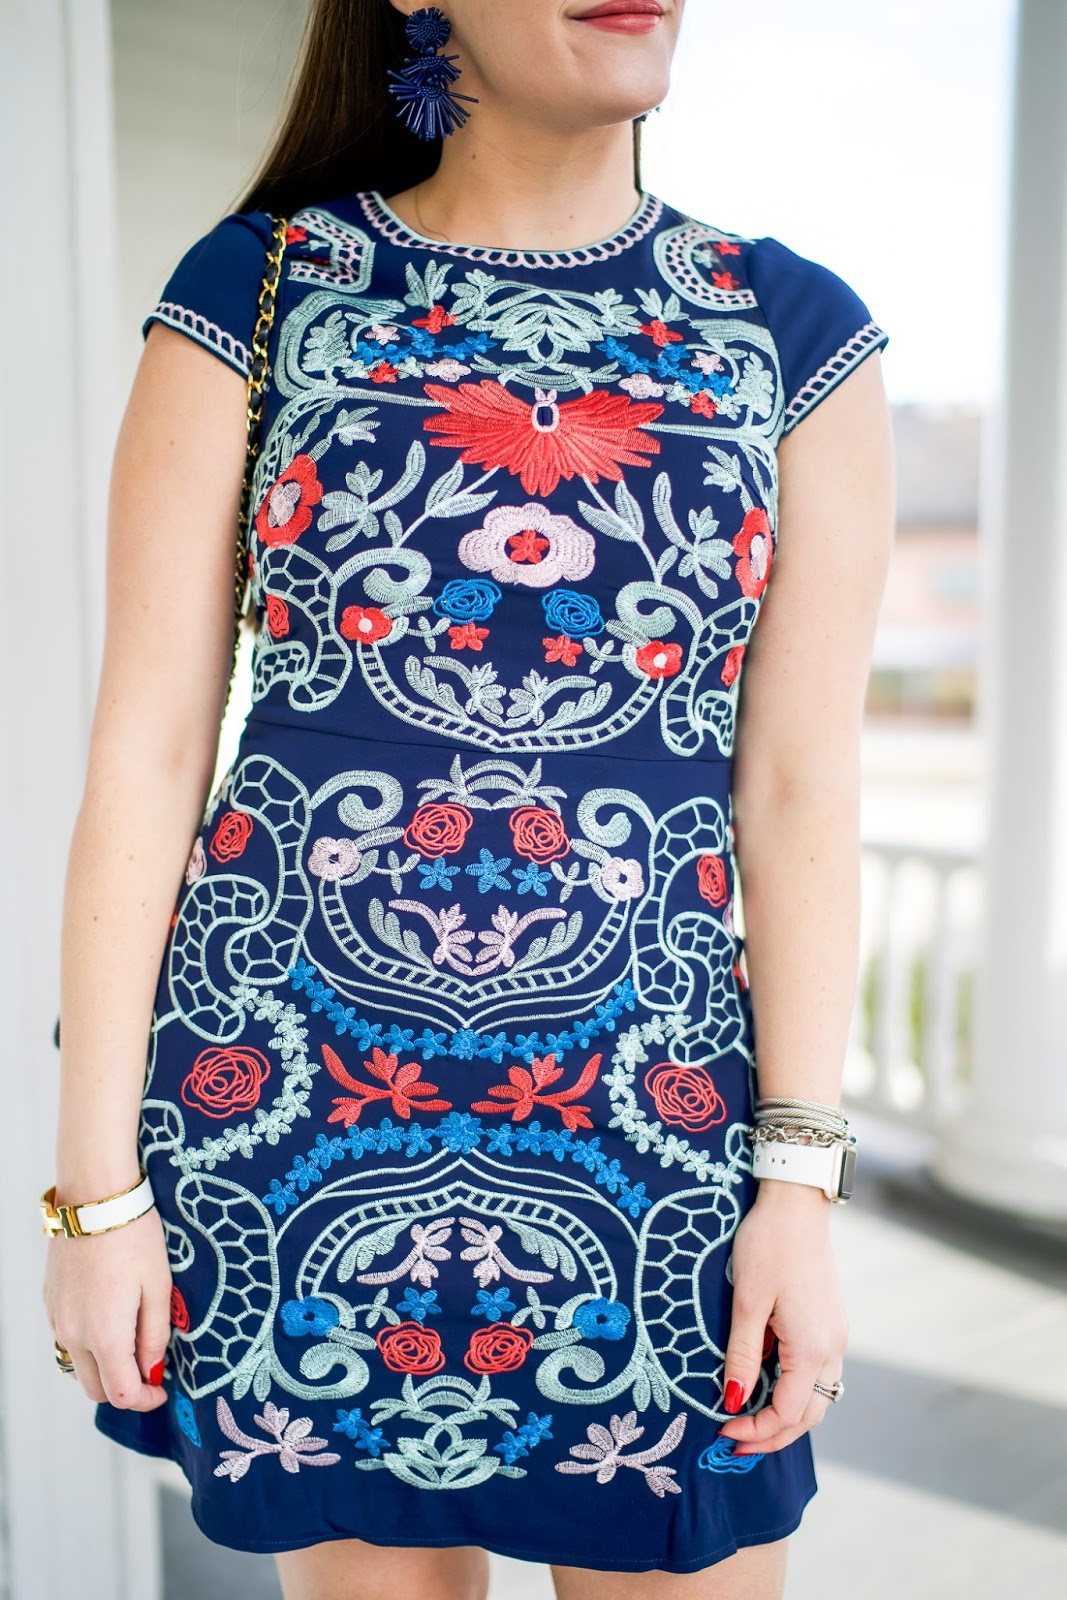 The Embroidered Dress to Make You Feel Like $100 Bill by popular New York fashion blogger Covering the Bases